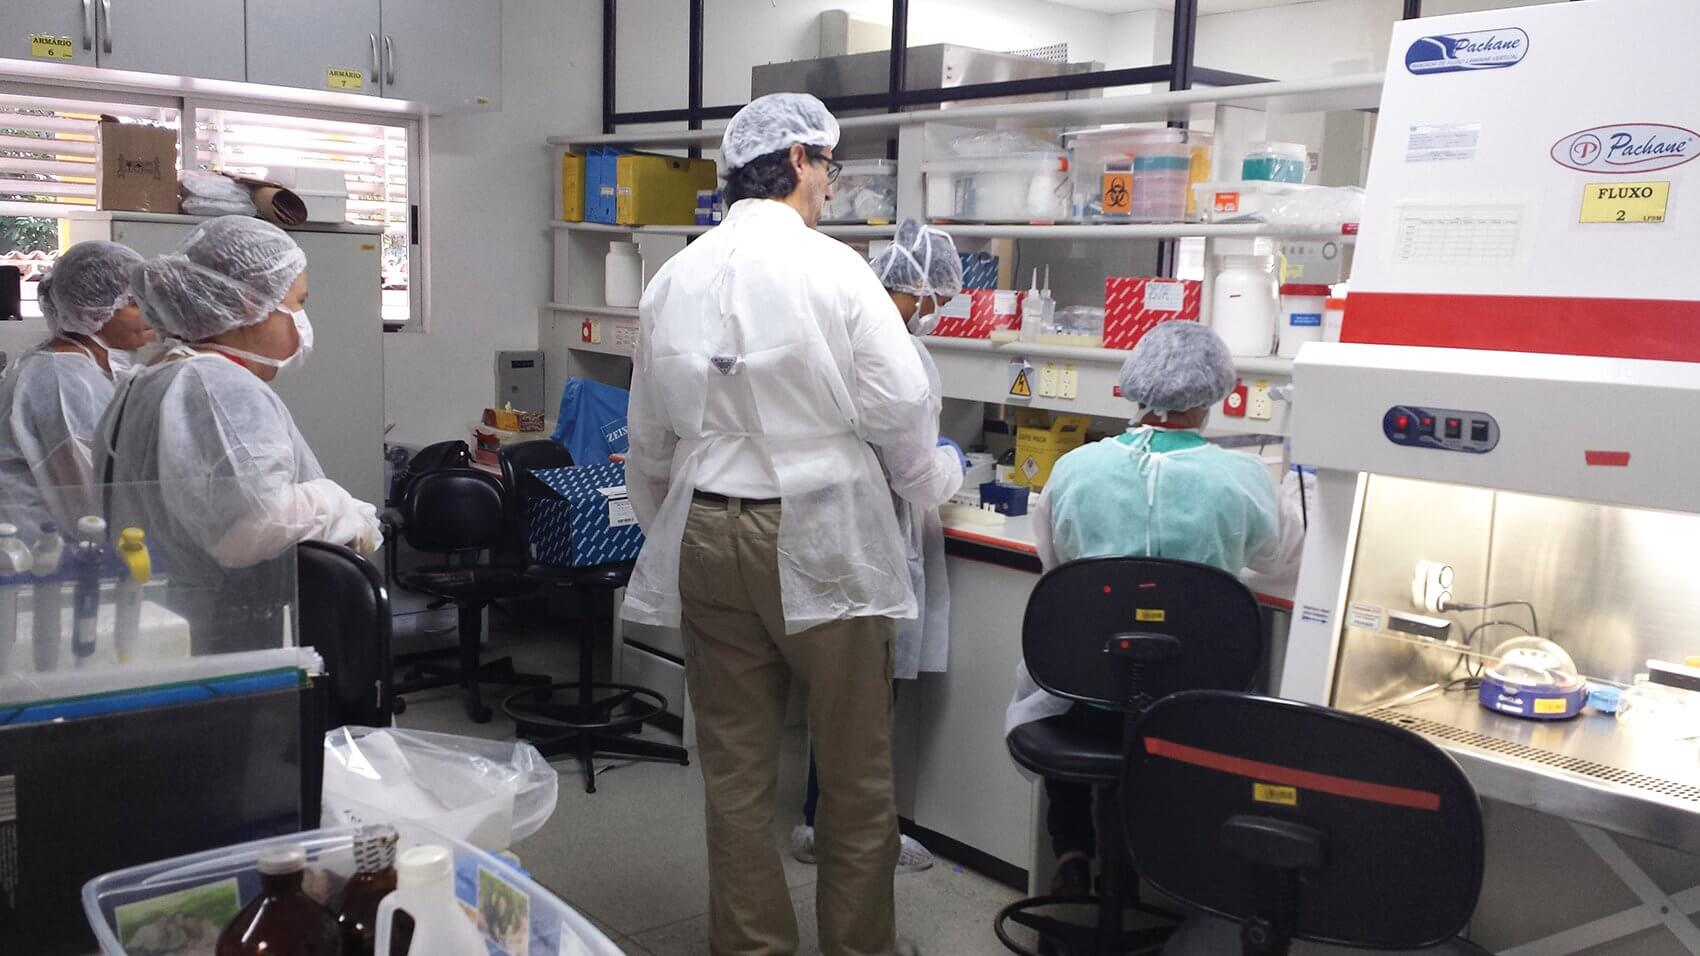 UTMB scientists with expertise in arboviruses, including Zika, worked alongside Brazilian colleagues in December to establish diagnostic capabilities in local clinics. (Credit: Shannan Rossi, Ph.D., UTMB)